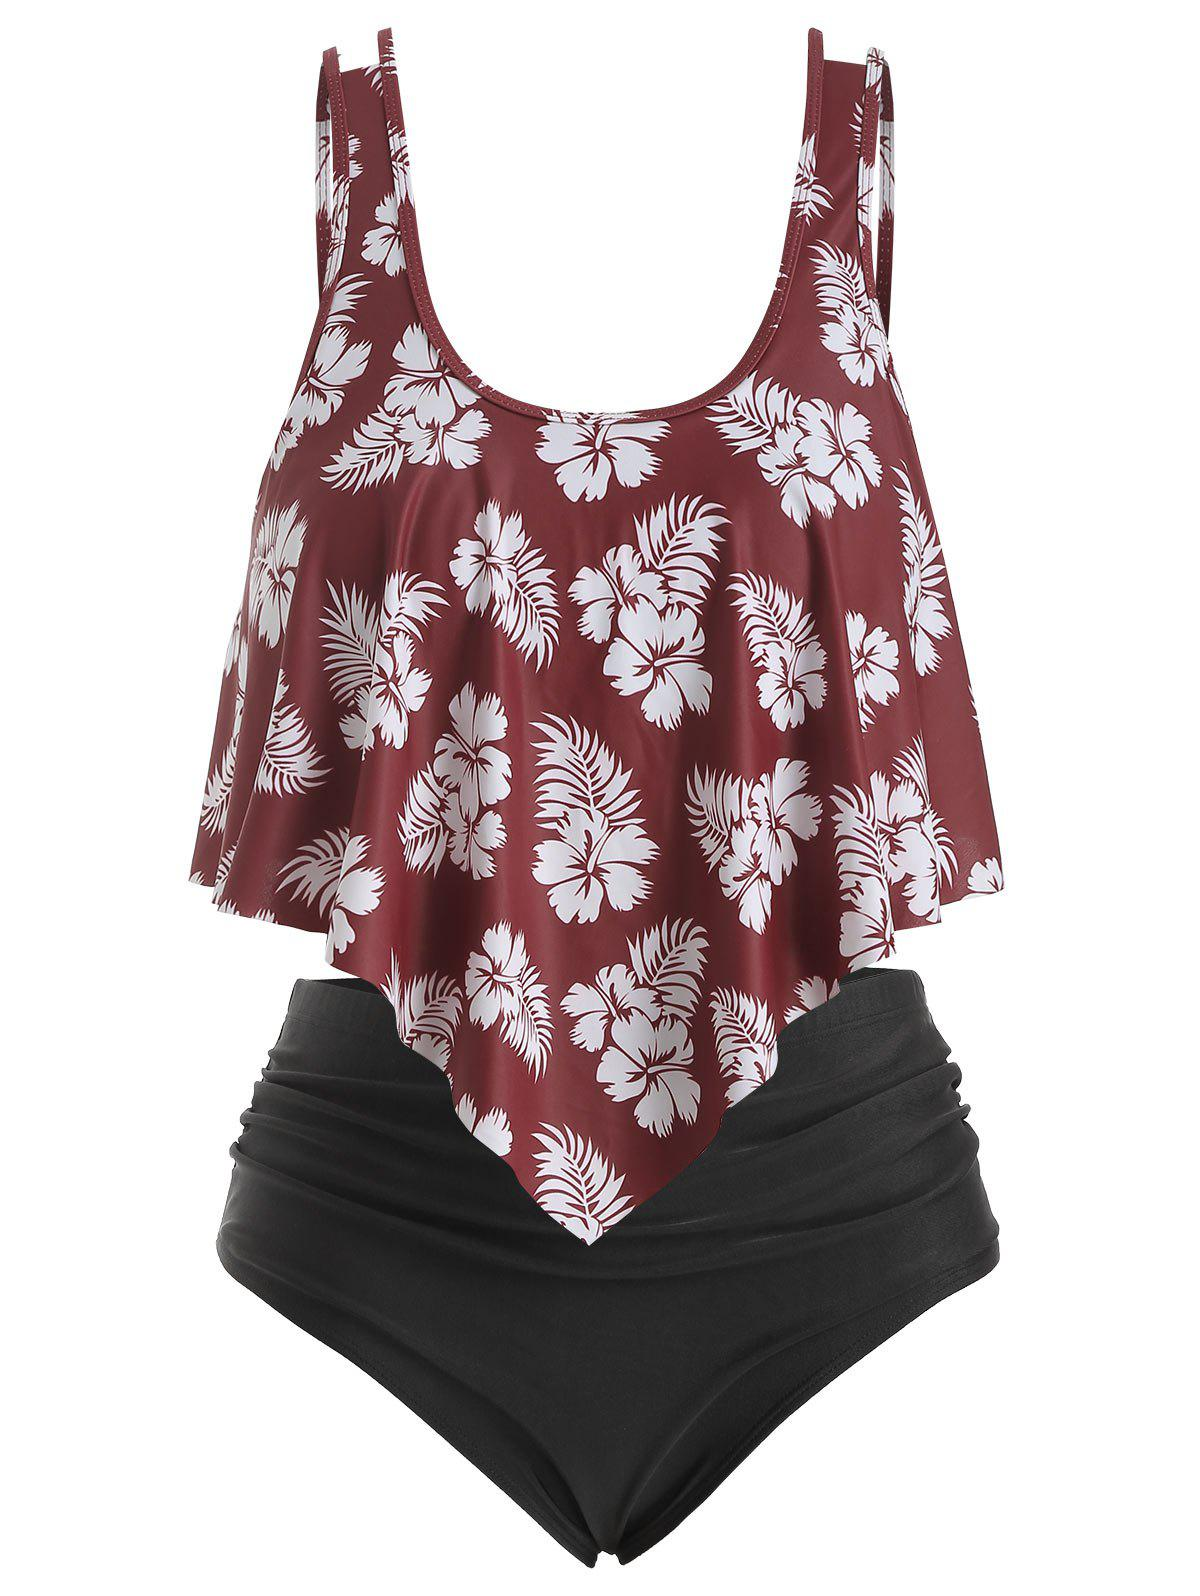 Overlay Flounces Floral Leaves Print Plus Size Tankini Swimsuit - RED WINE 4X